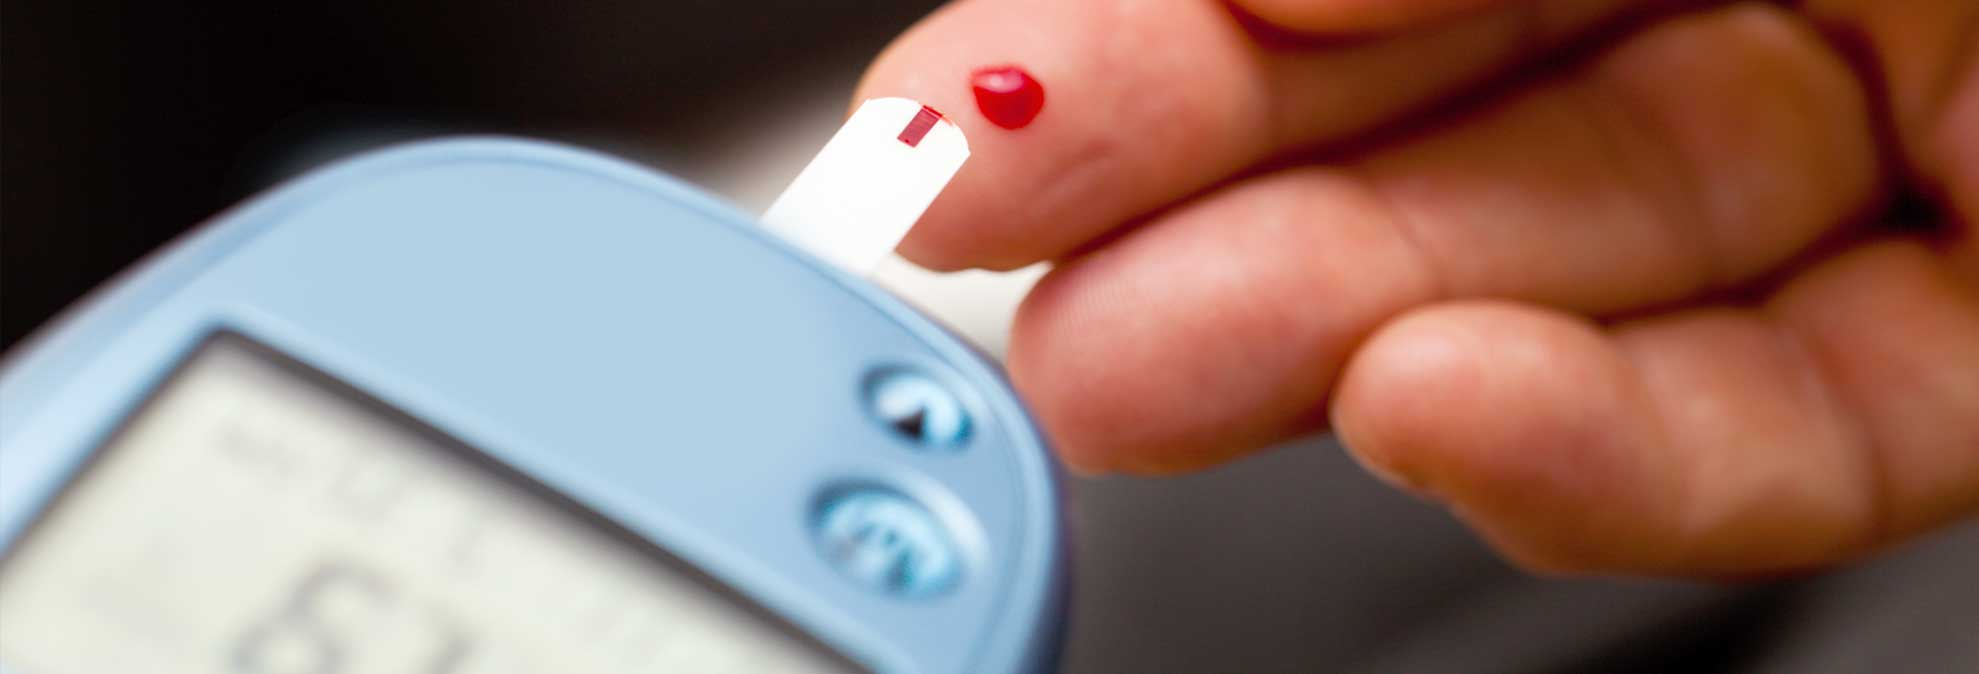 Best Blood Glucose Meter Buying Guide  Consumer Reports